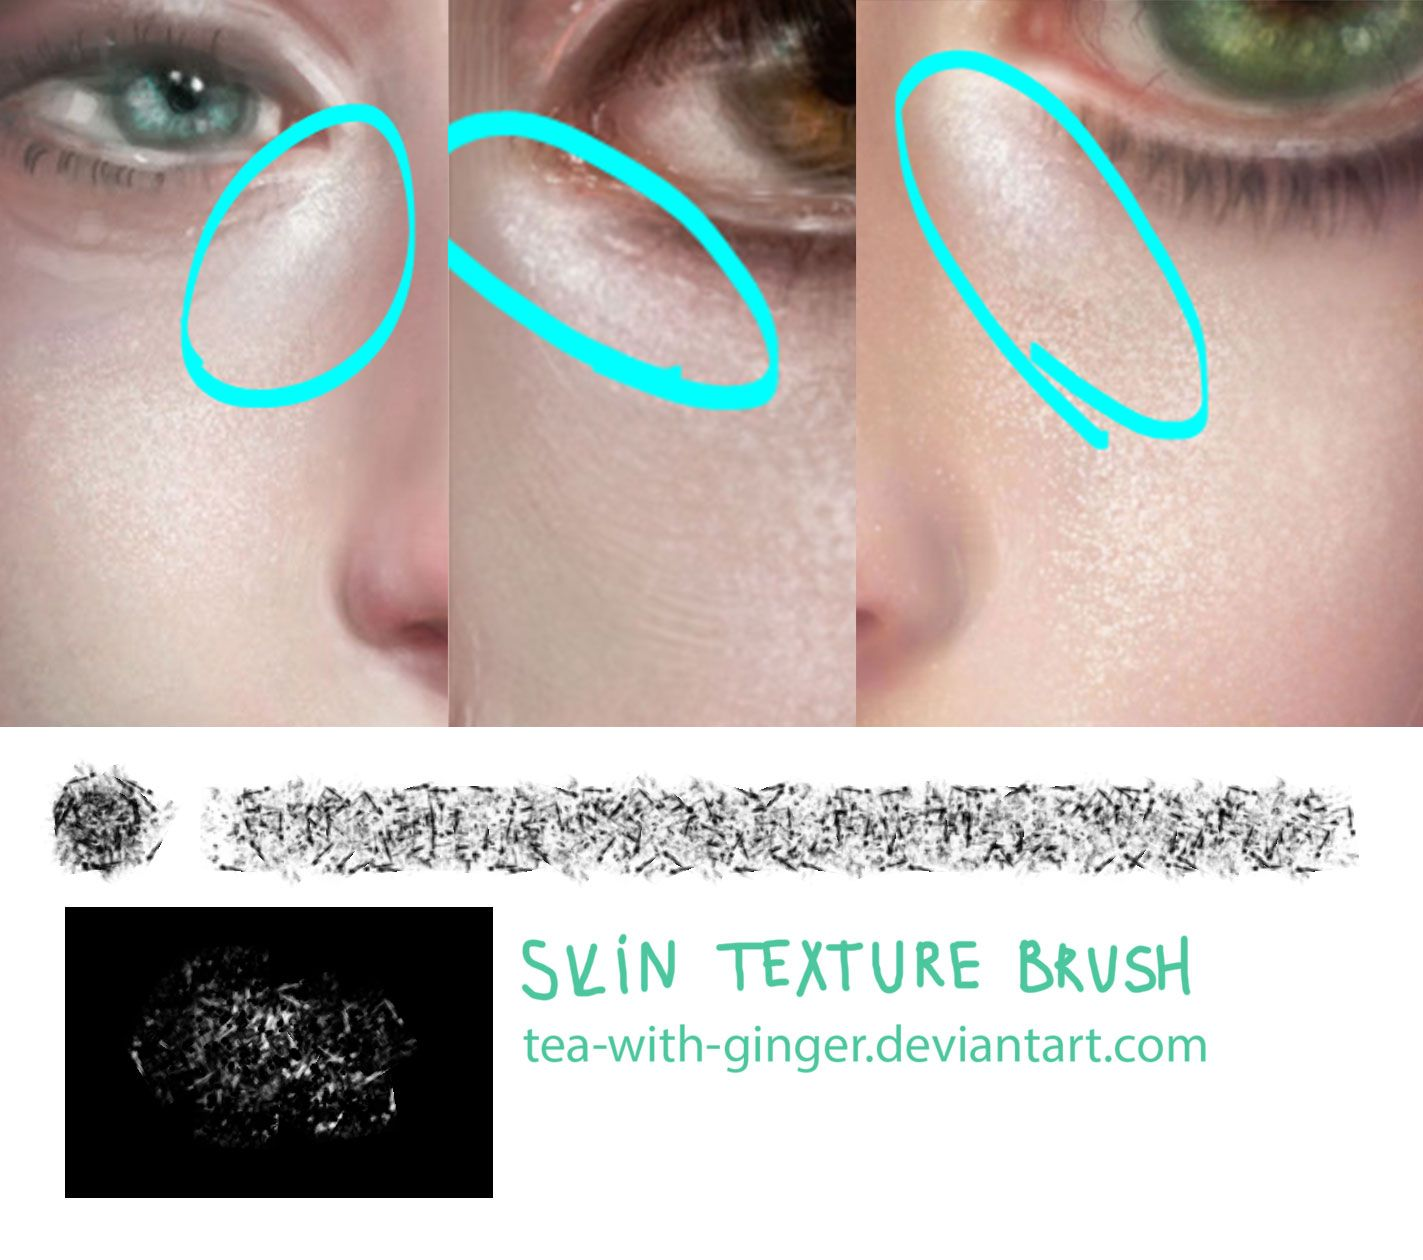 Skin texture brush by Tea-with-Ginger.deviantart.com on ...